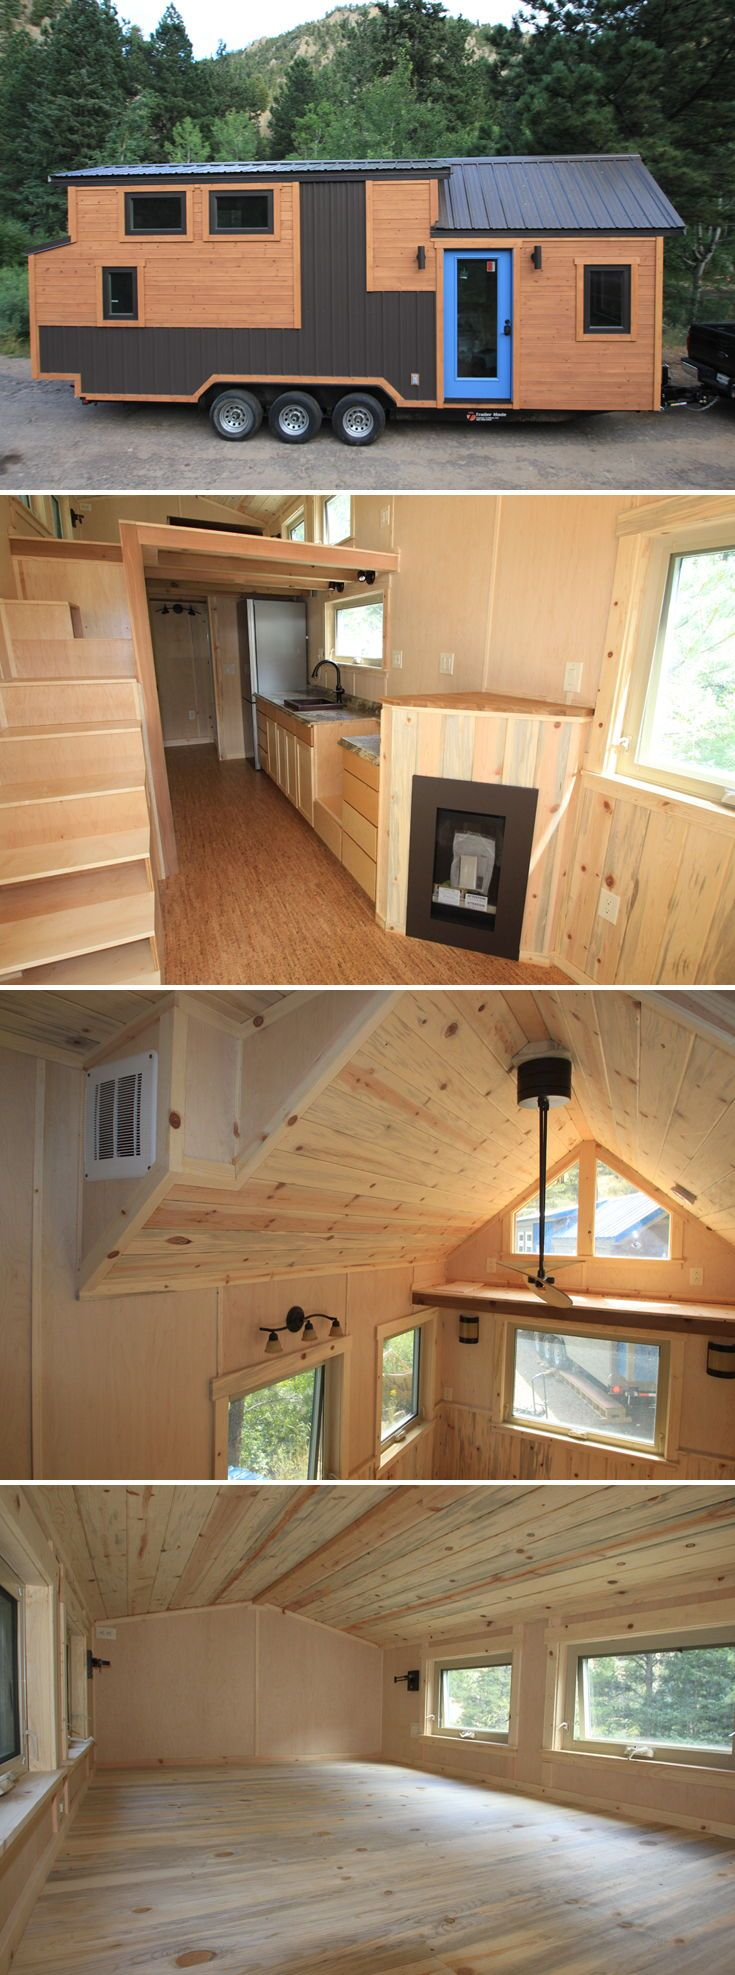 Fullsize Of Monarch Tiny Homes